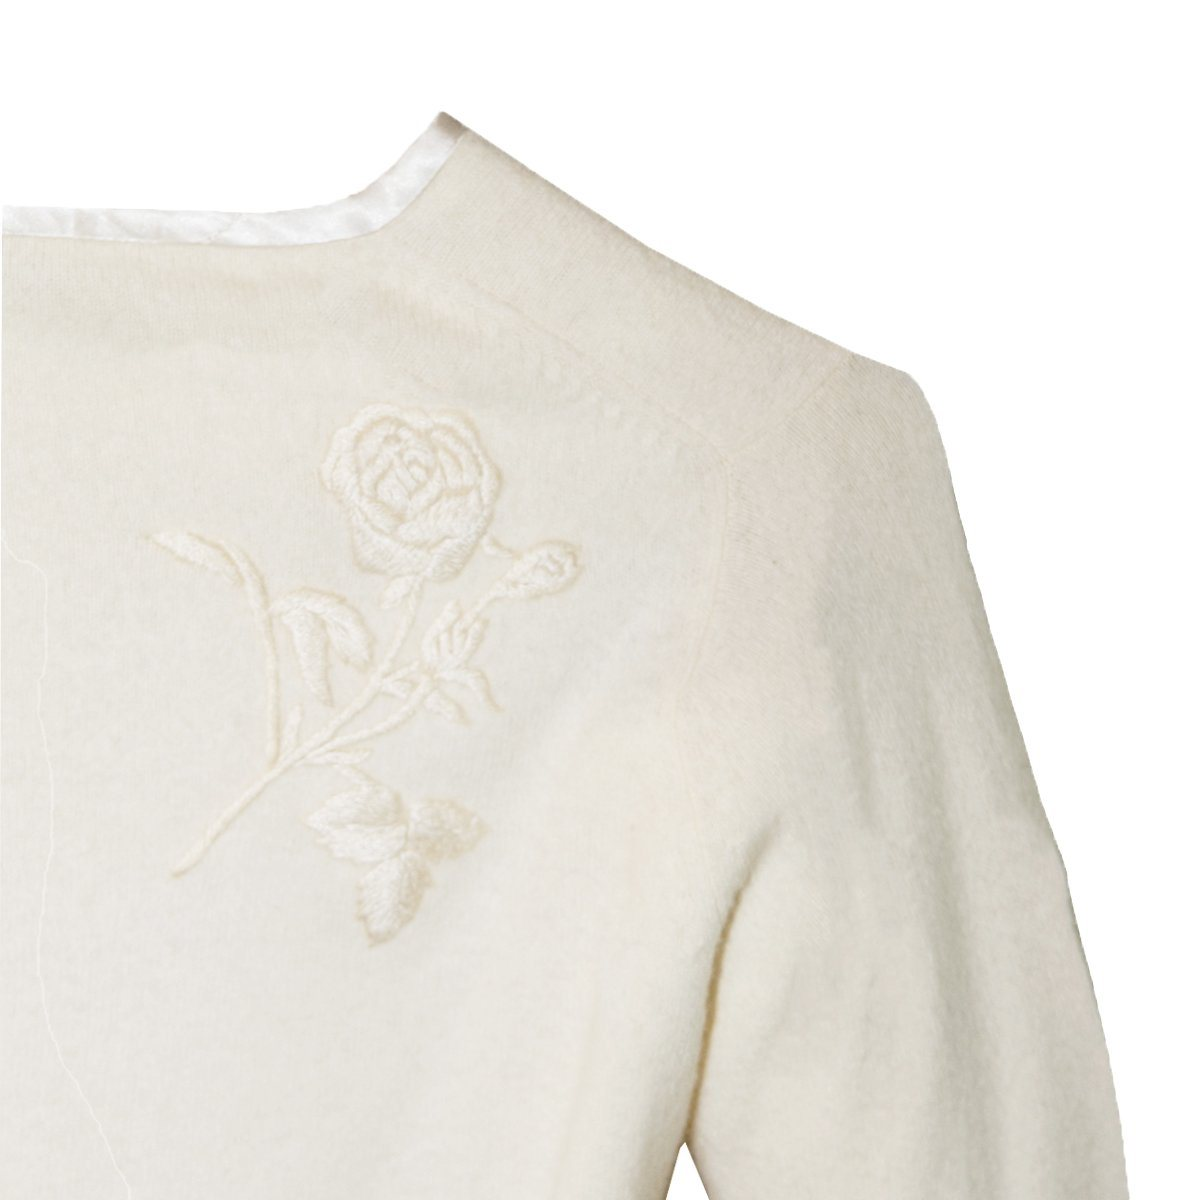 Sakowitz Vintage 60s Cream Cardigan Sweater 5, Large Embroidered Roses